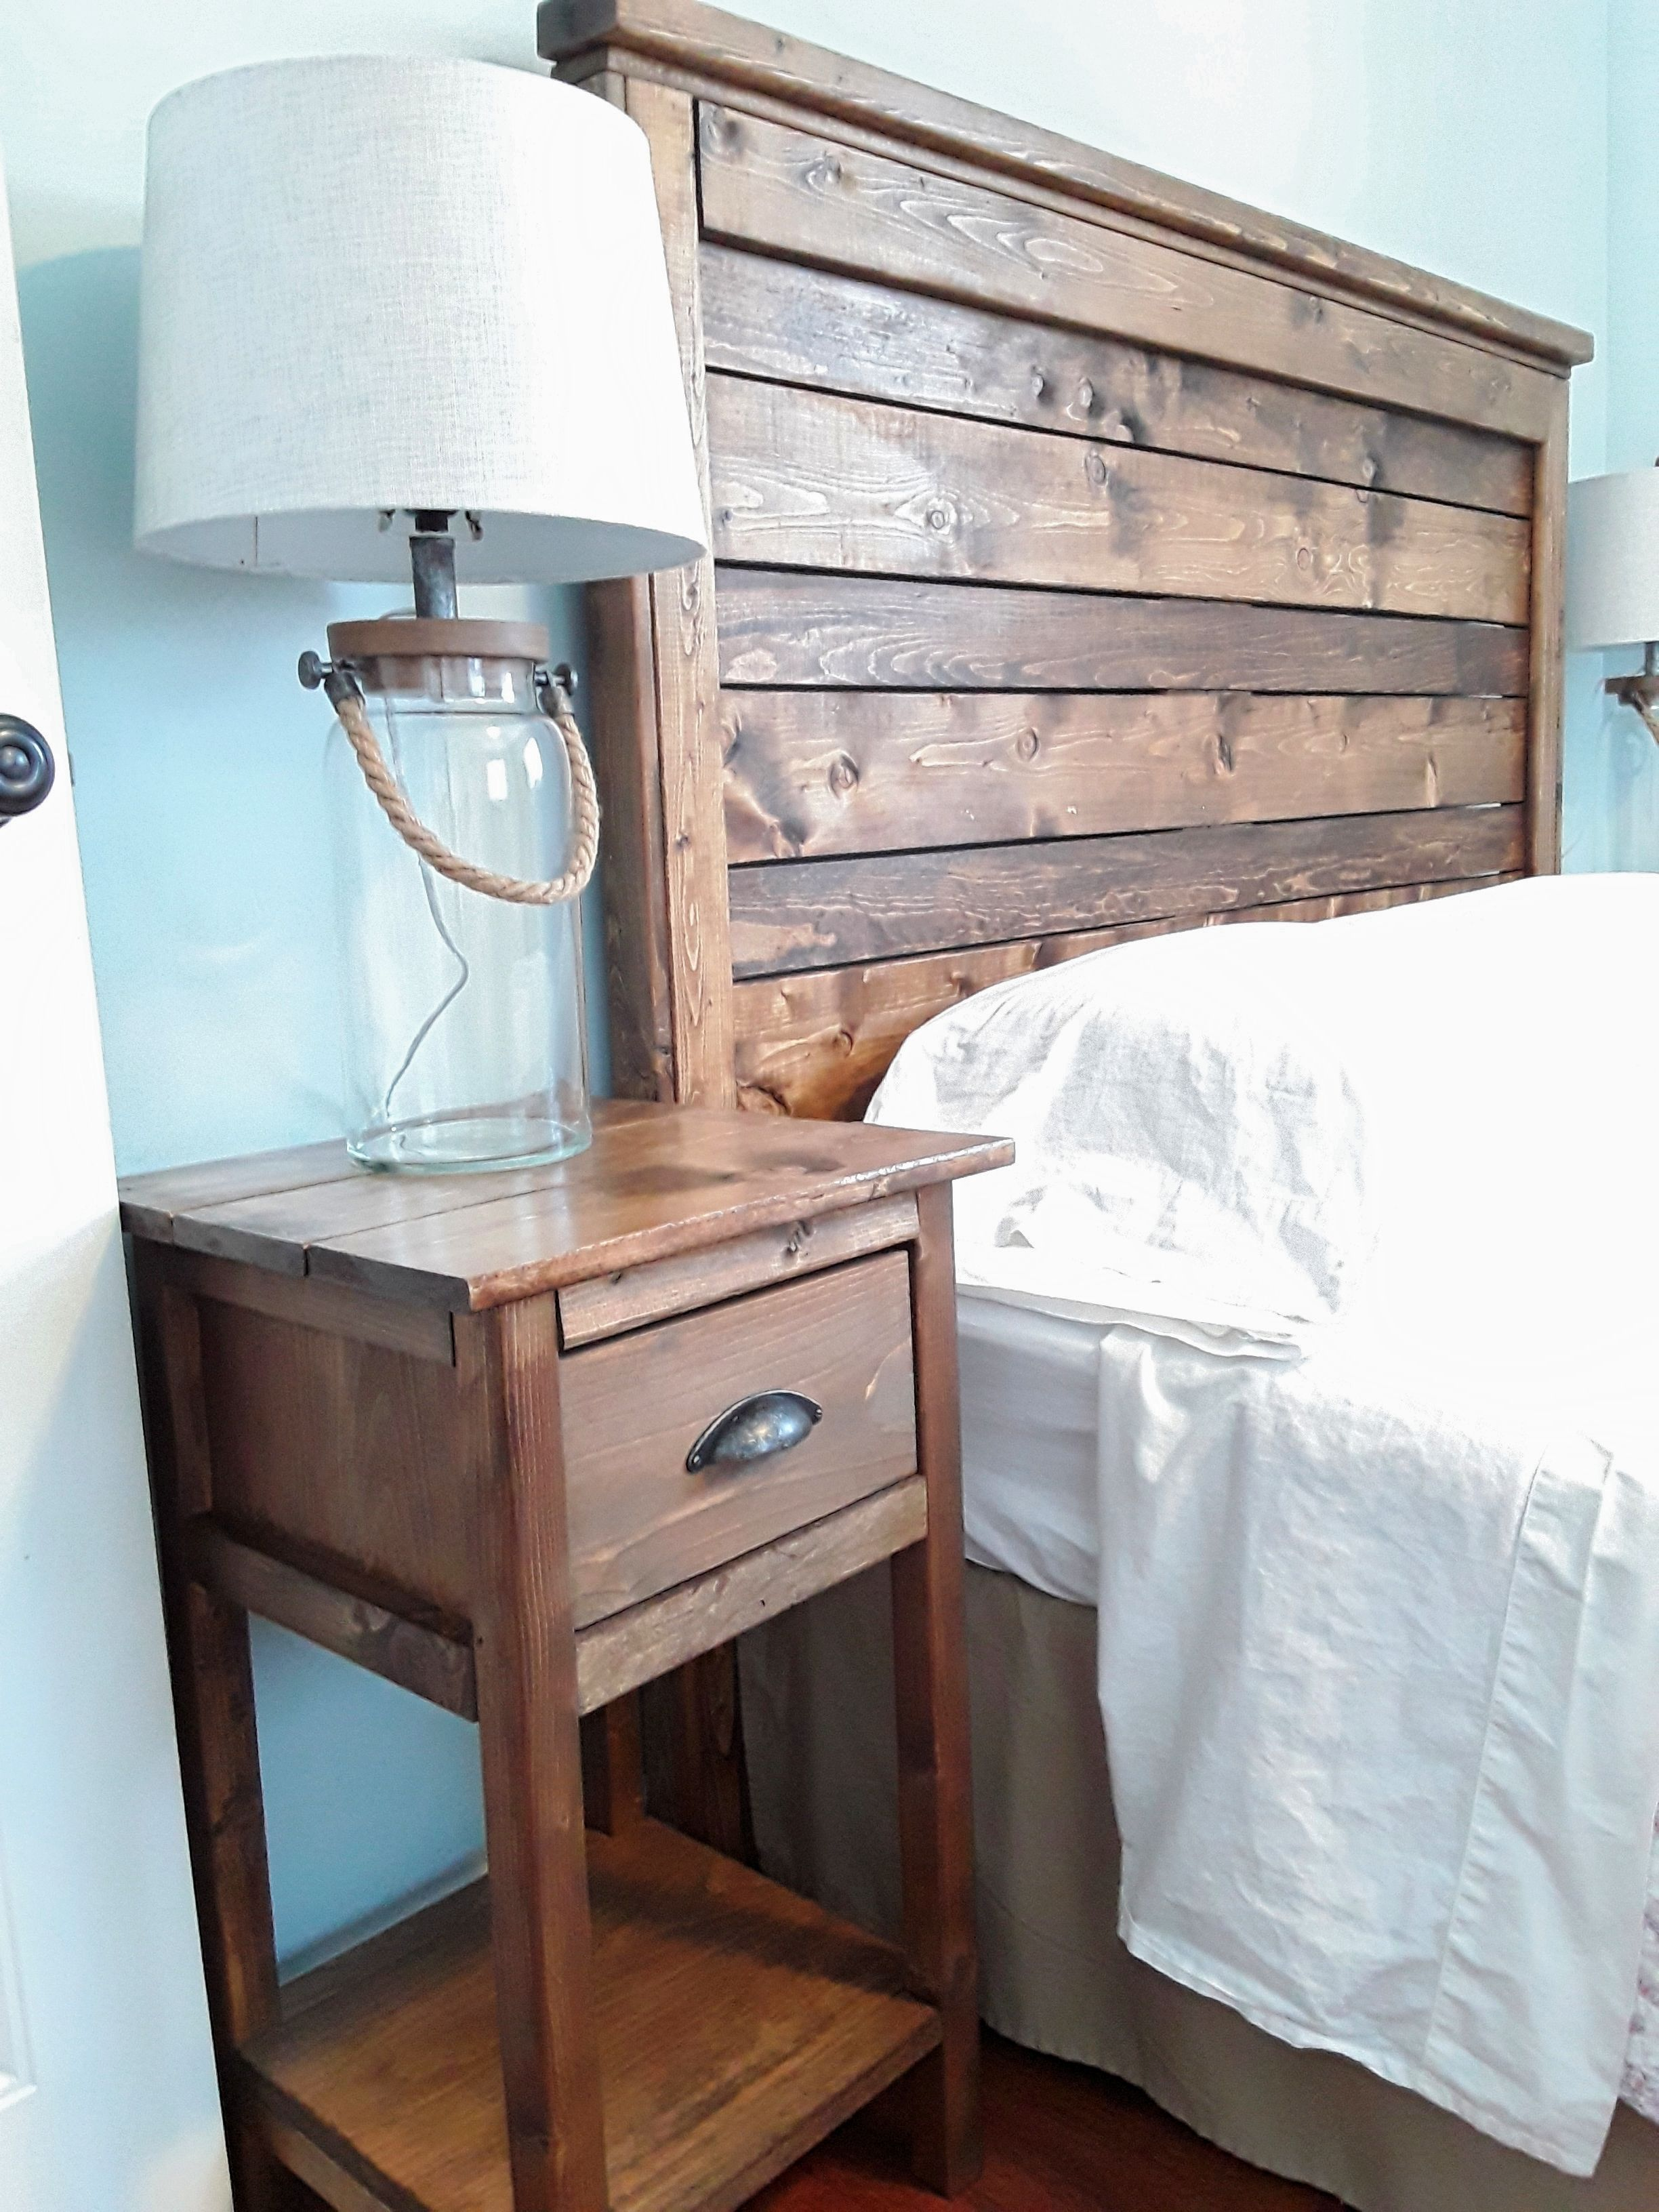 Diy Rustic Wood Headboard And Nightstand Diy Wood Headboard Rustic Wood Headboard Bedroom Diy